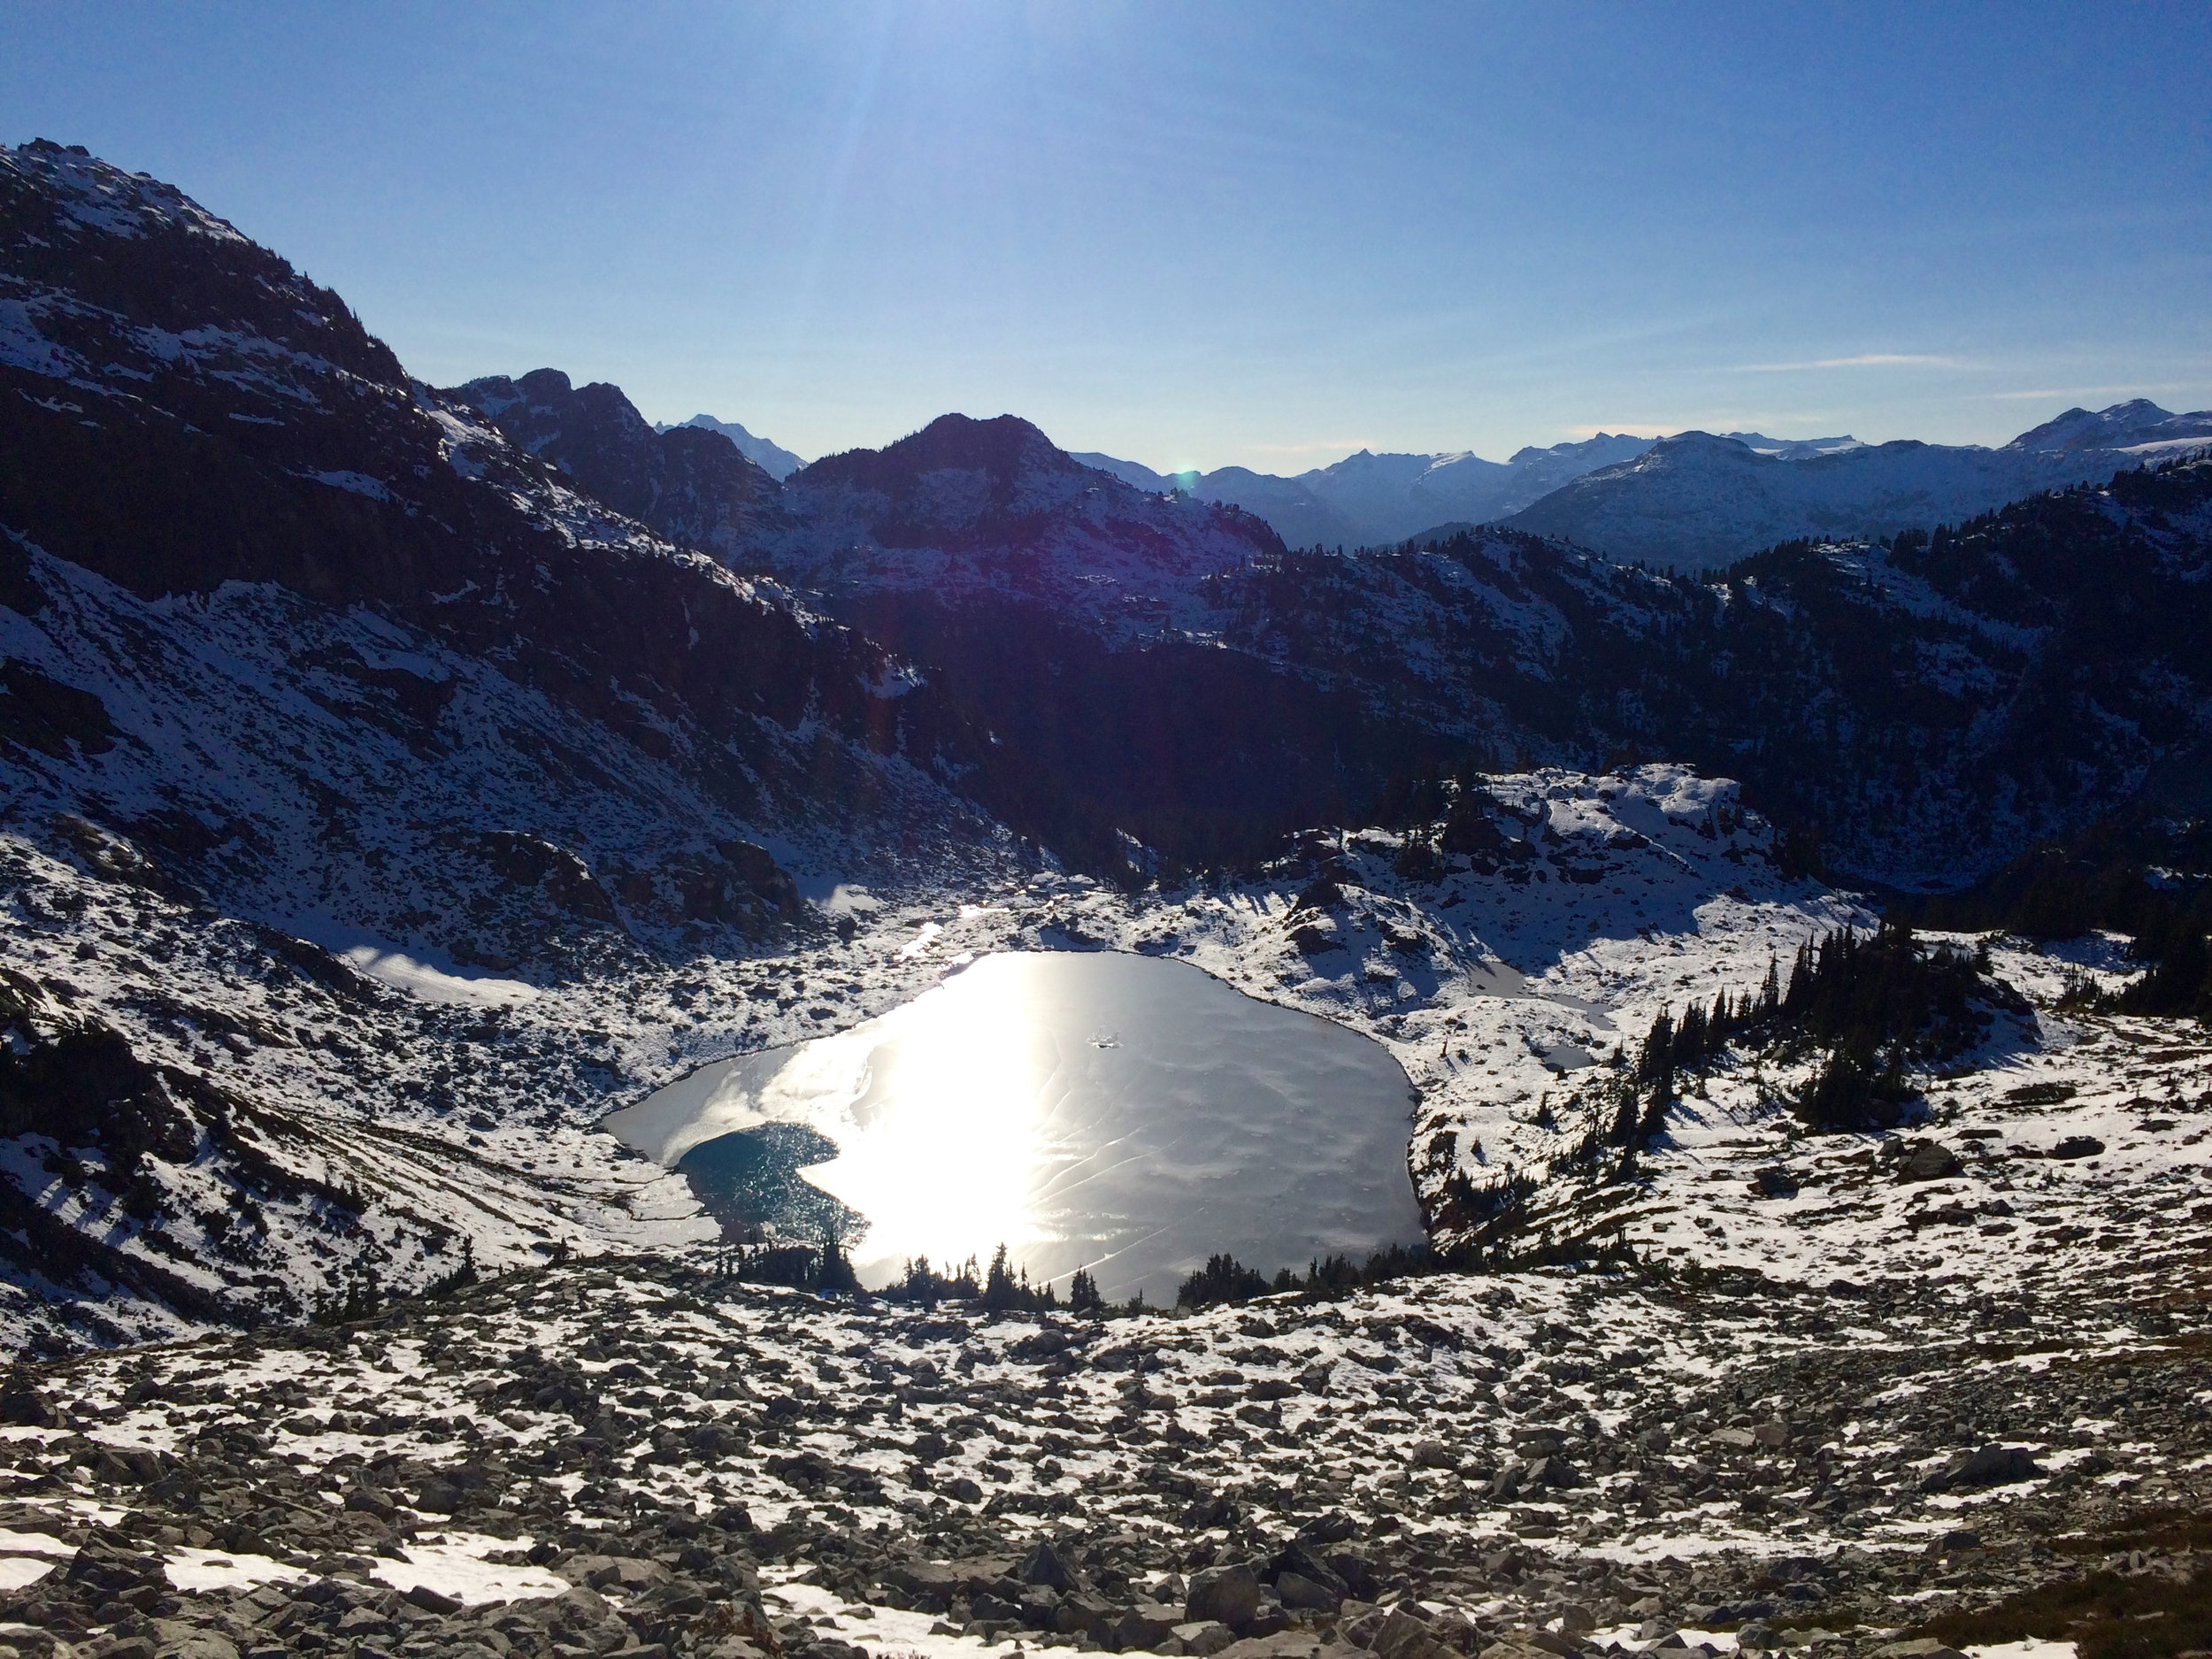 """Looking back across that same lake as we hiked a bit further - at this point, the """"trail"""" was mostly frozen snow and loose rock."""